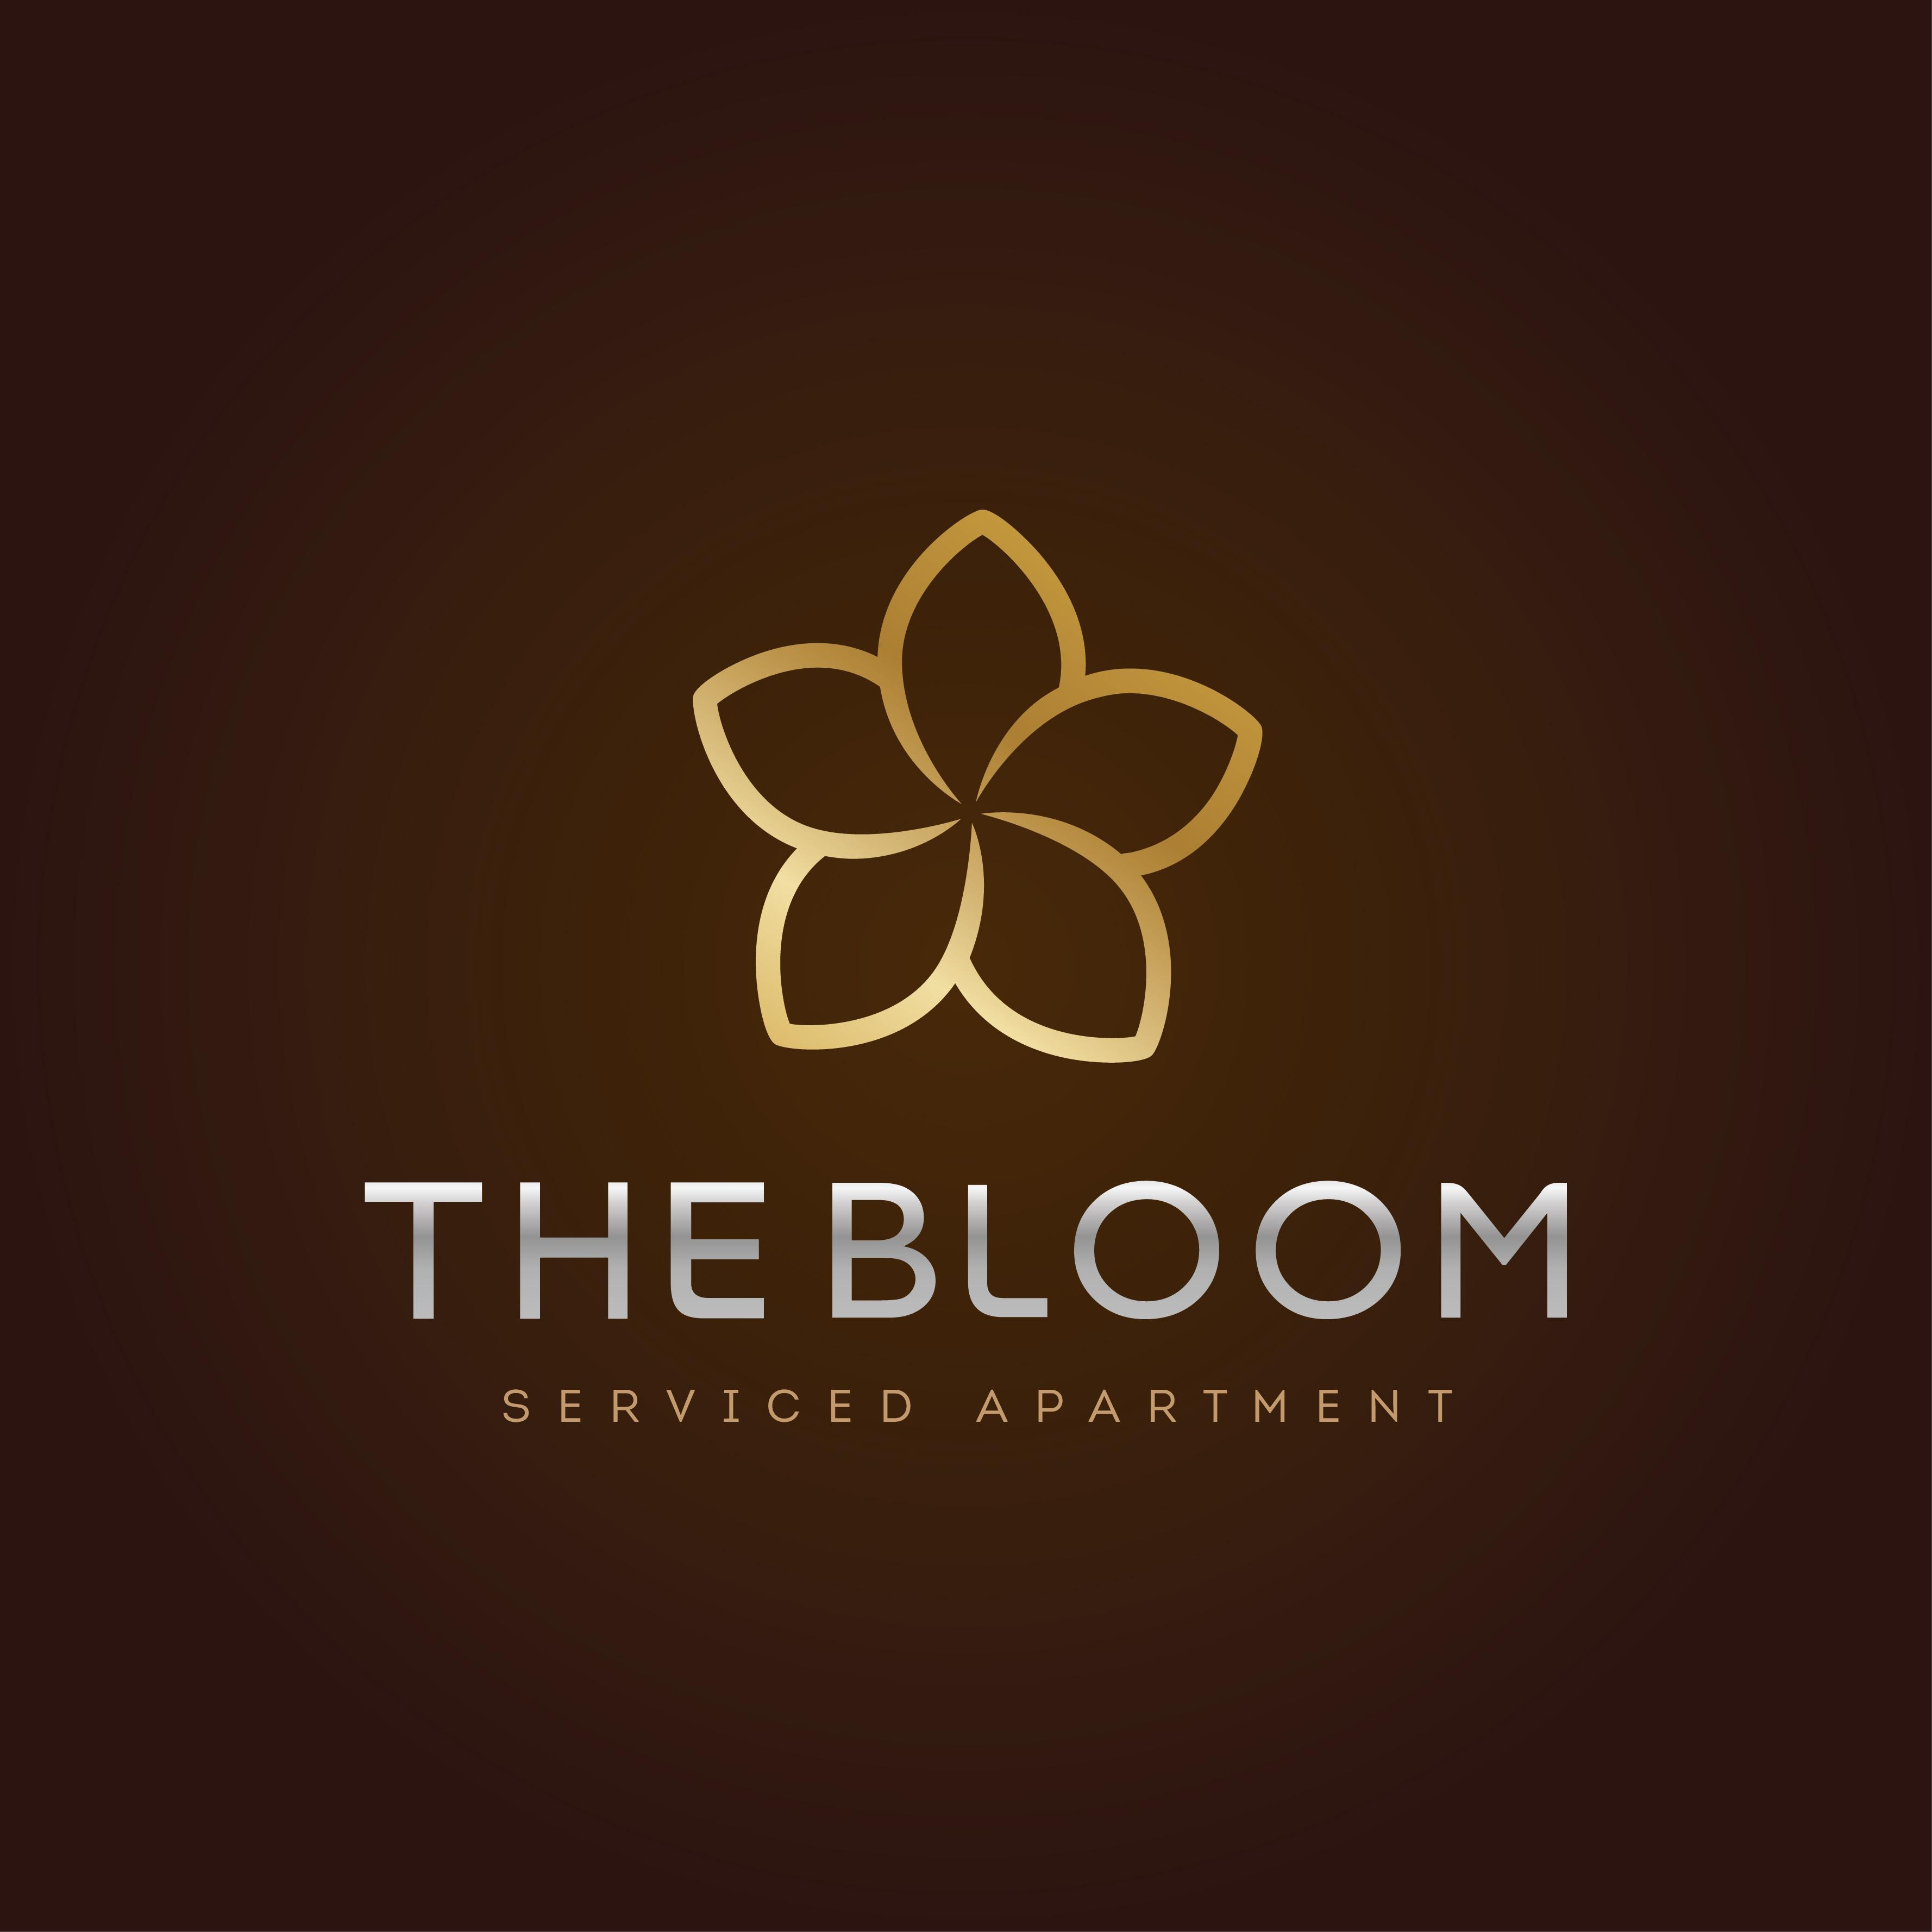 The Bloom Serviced Apartment